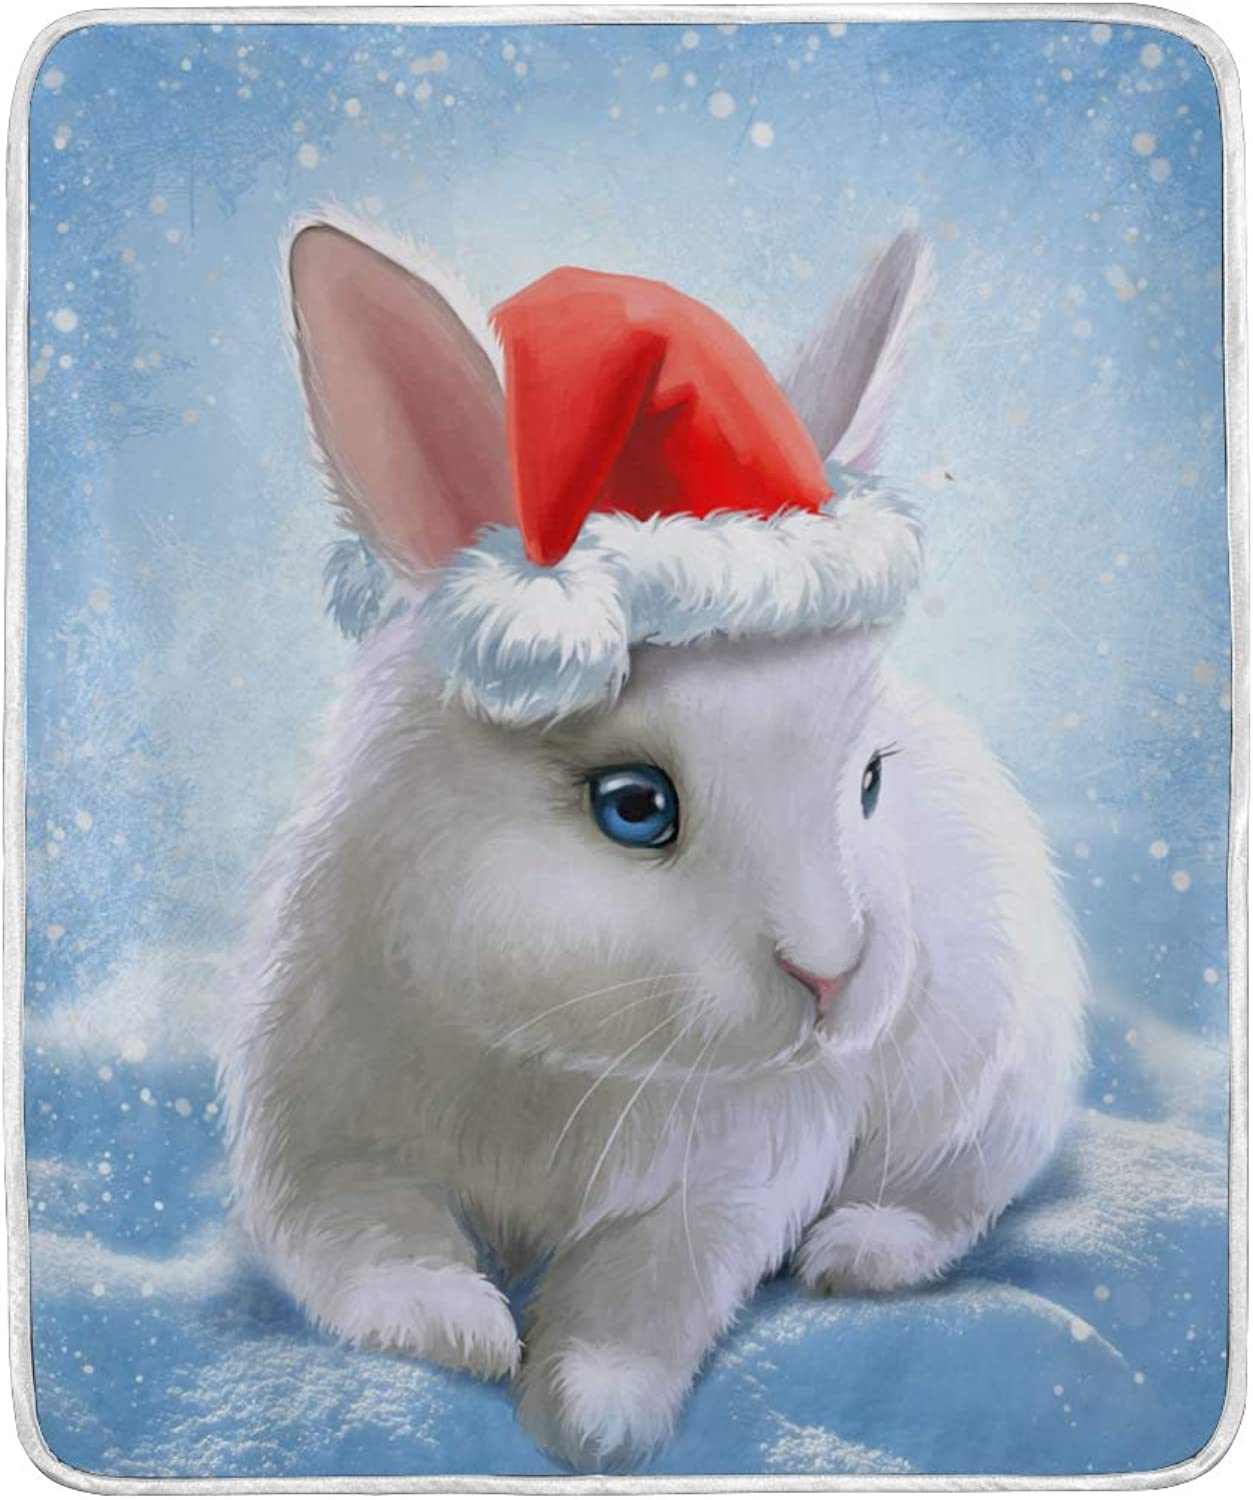 ALAZA Home Decor Christmas Rabbit Bunny with Santa Claus's Hat Blanket Soft Warm Blankets for Bed Couch Sofa Lightweight Travelling Camping 60 x 50 Inch Throw Size for Kids Boys Women